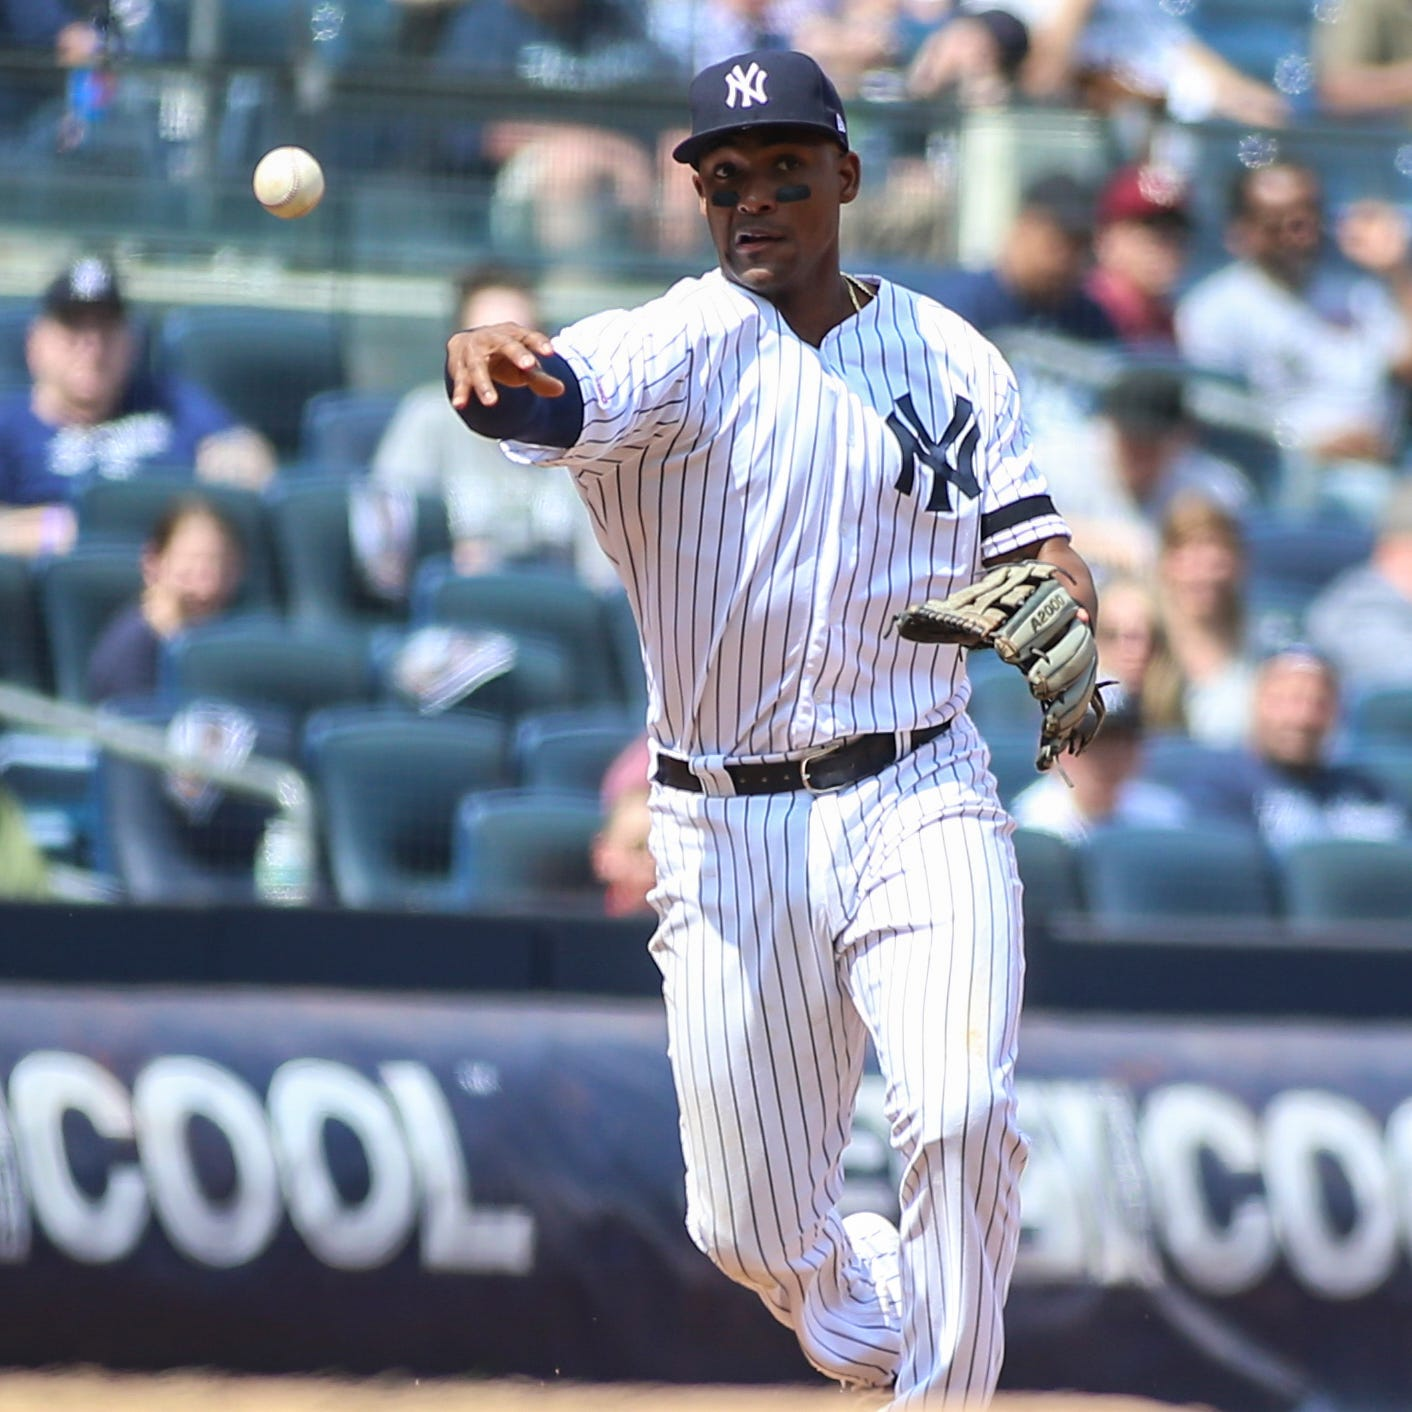 Yankees weighing options that could see end to Miguel Andujar's season